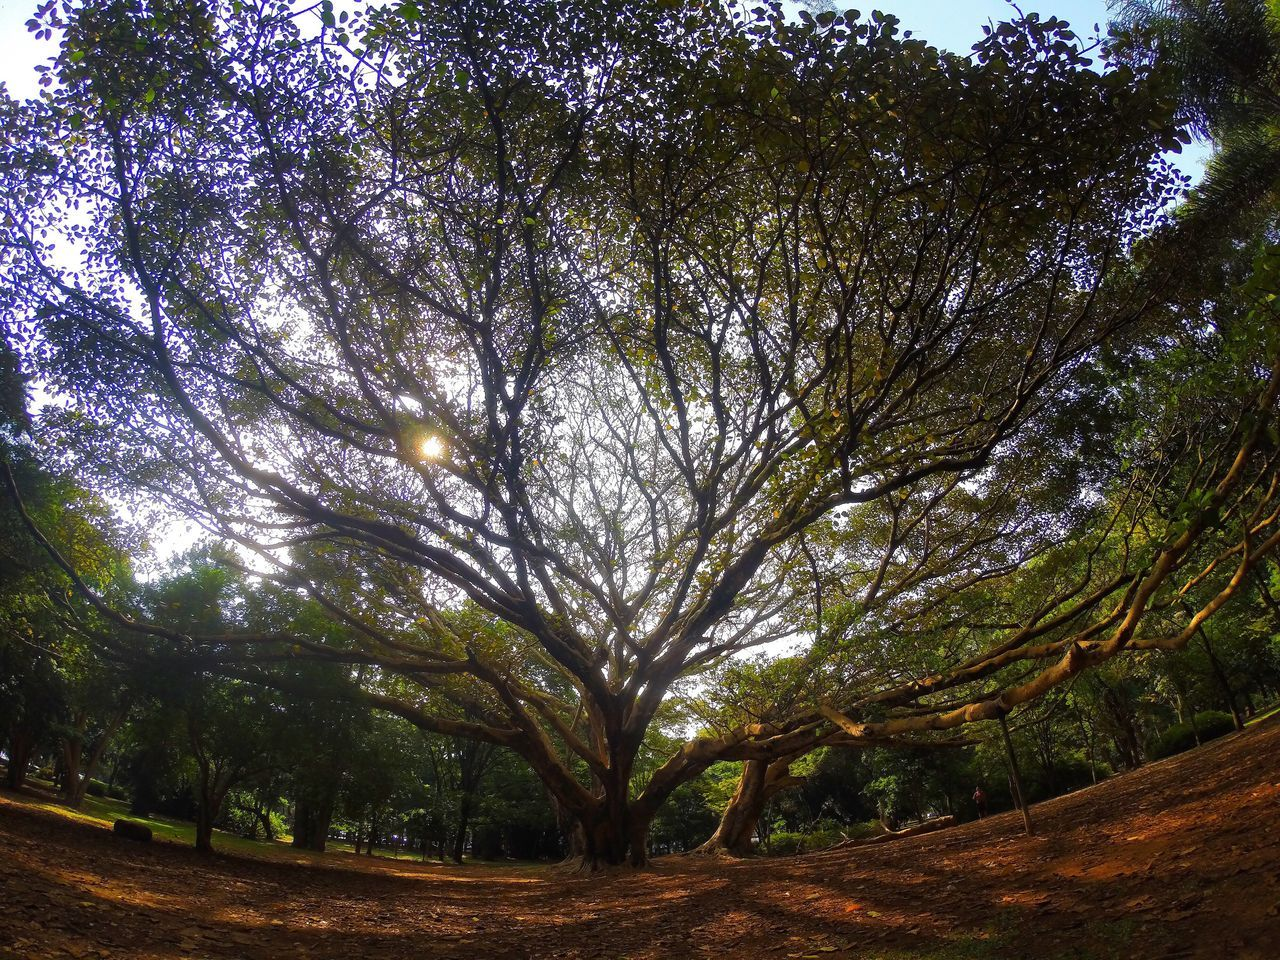 Gopro Goprooftheday GoPro Hero3+ Goprophotography GoPrography Sao Paulo - Brazil São Paulo, Brasil Ibirapuera Ibirapuera Park Nature Nature Photography Beauty In Nature Naturelovers